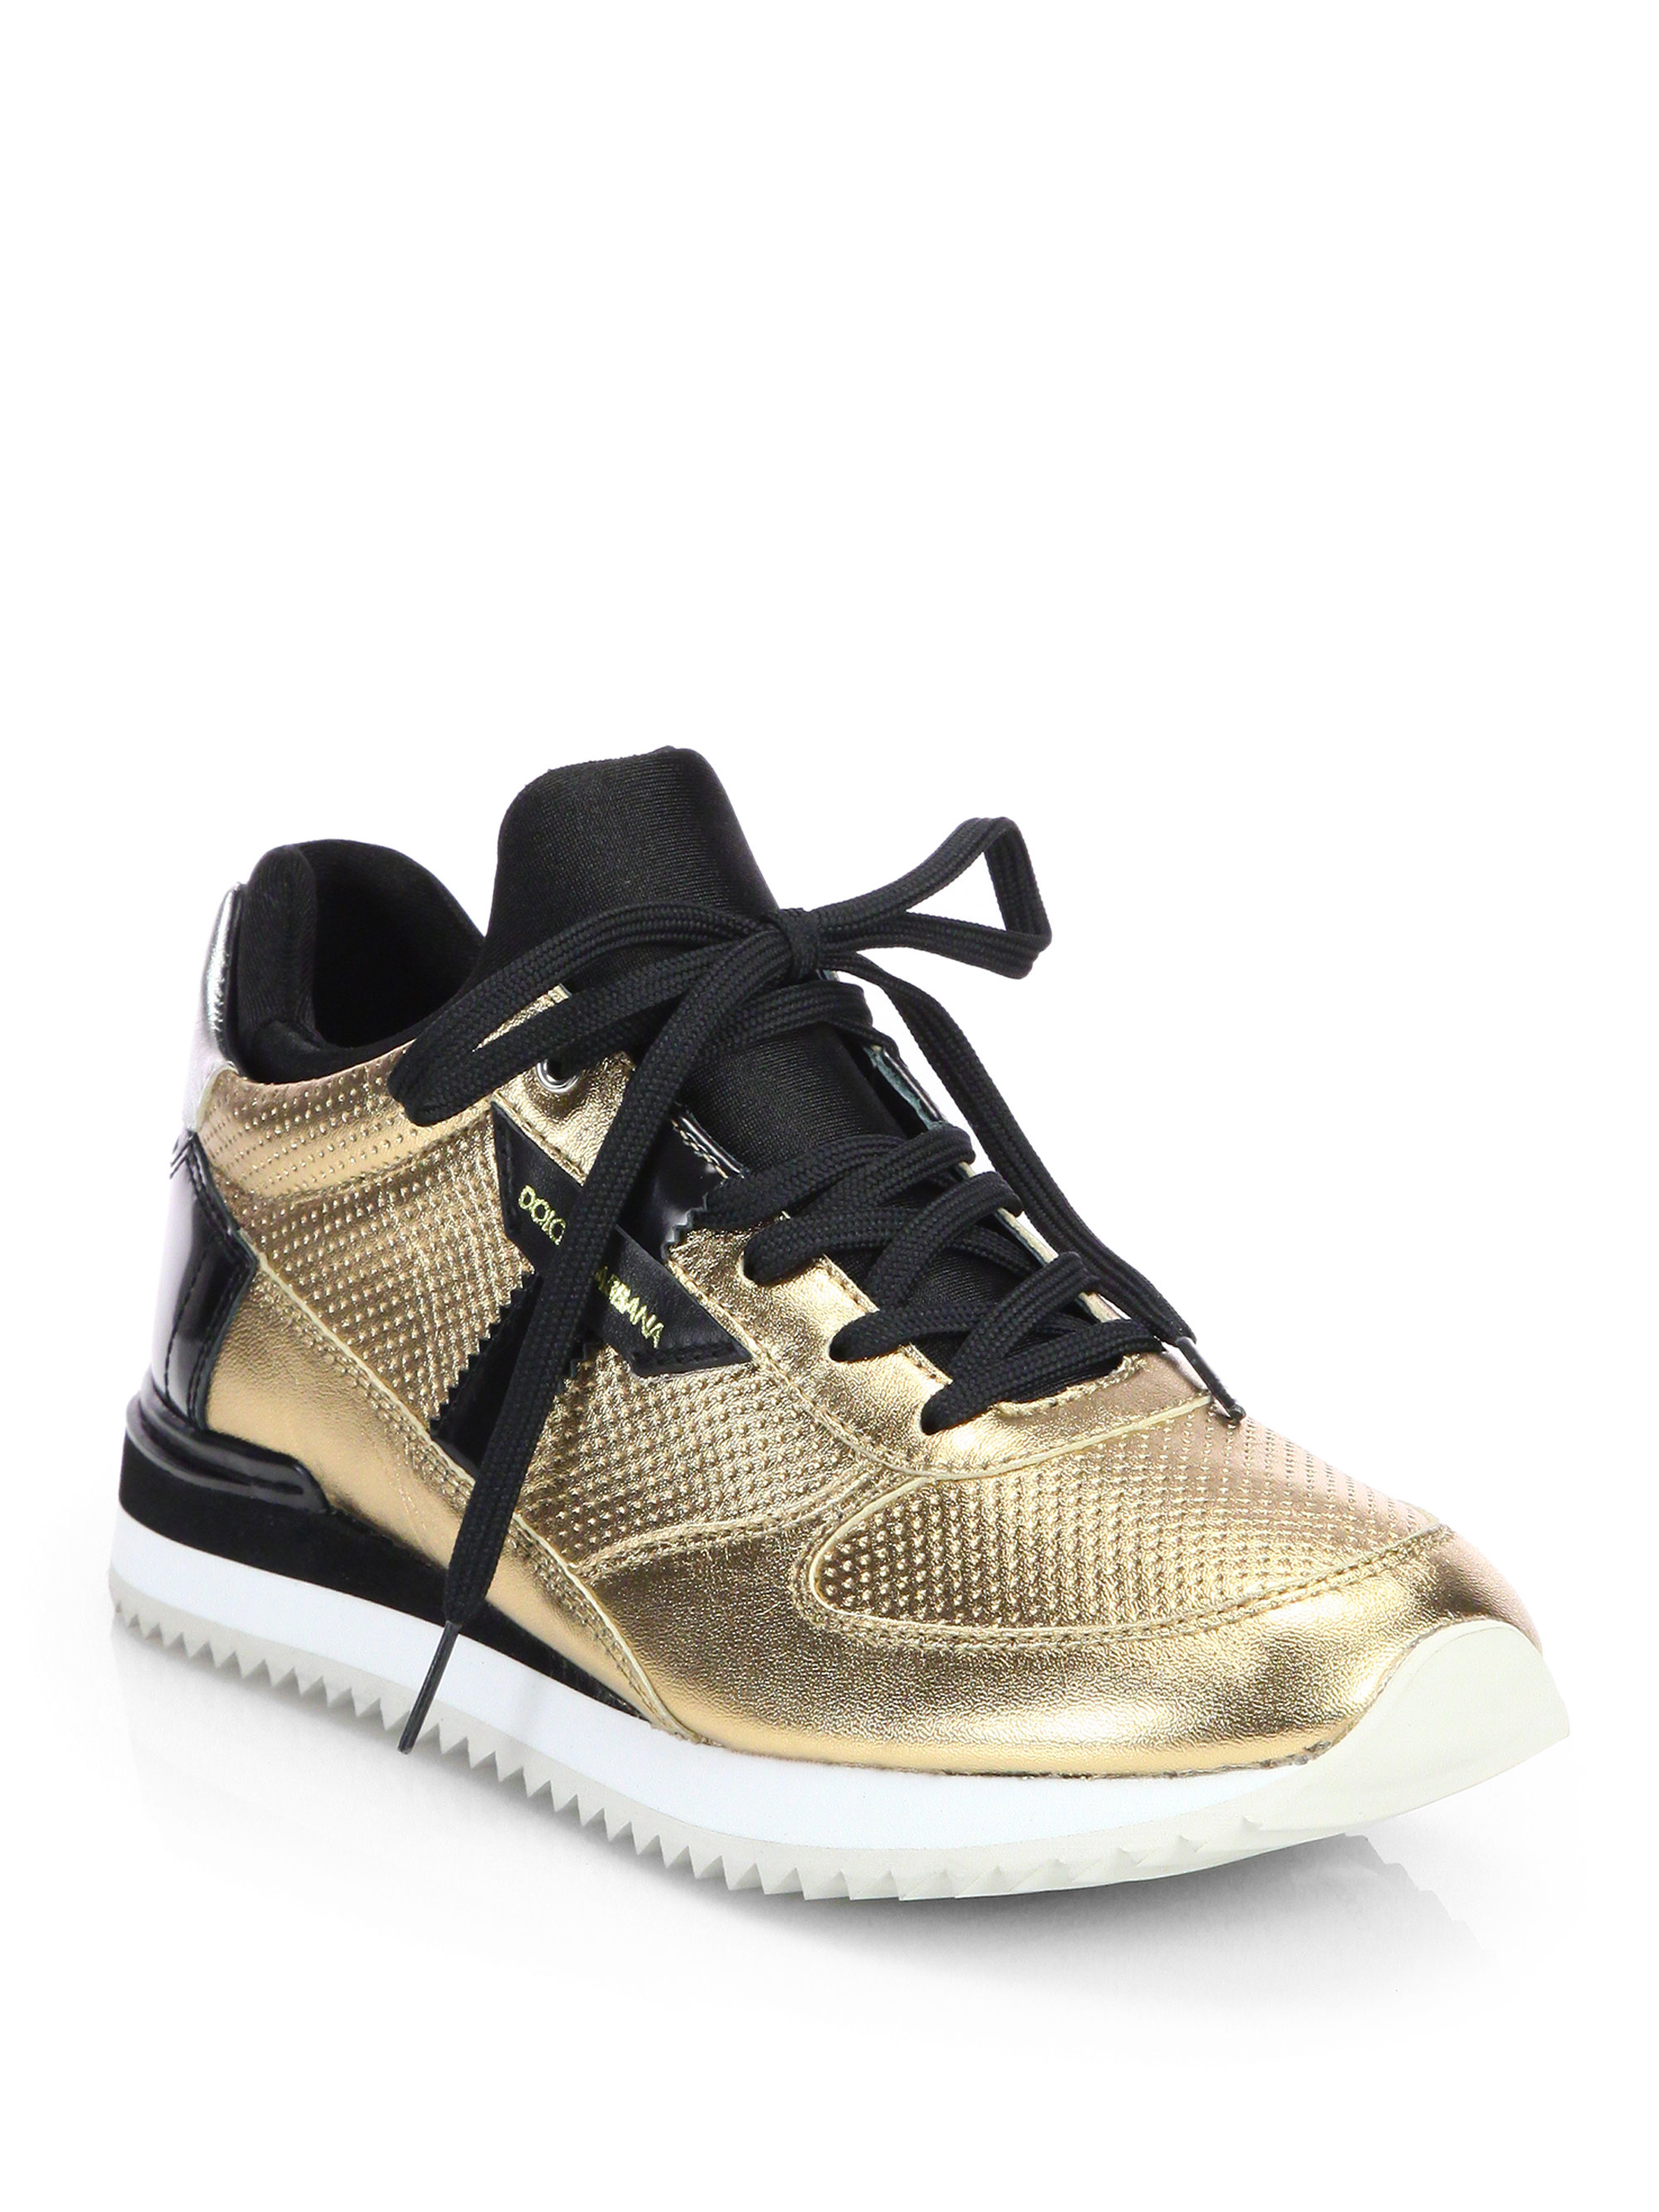 dolce gabbana metallic patent leather lace up sneakers in metallic lyst. Black Bedroom Furniture Sets. Home Design Ideas